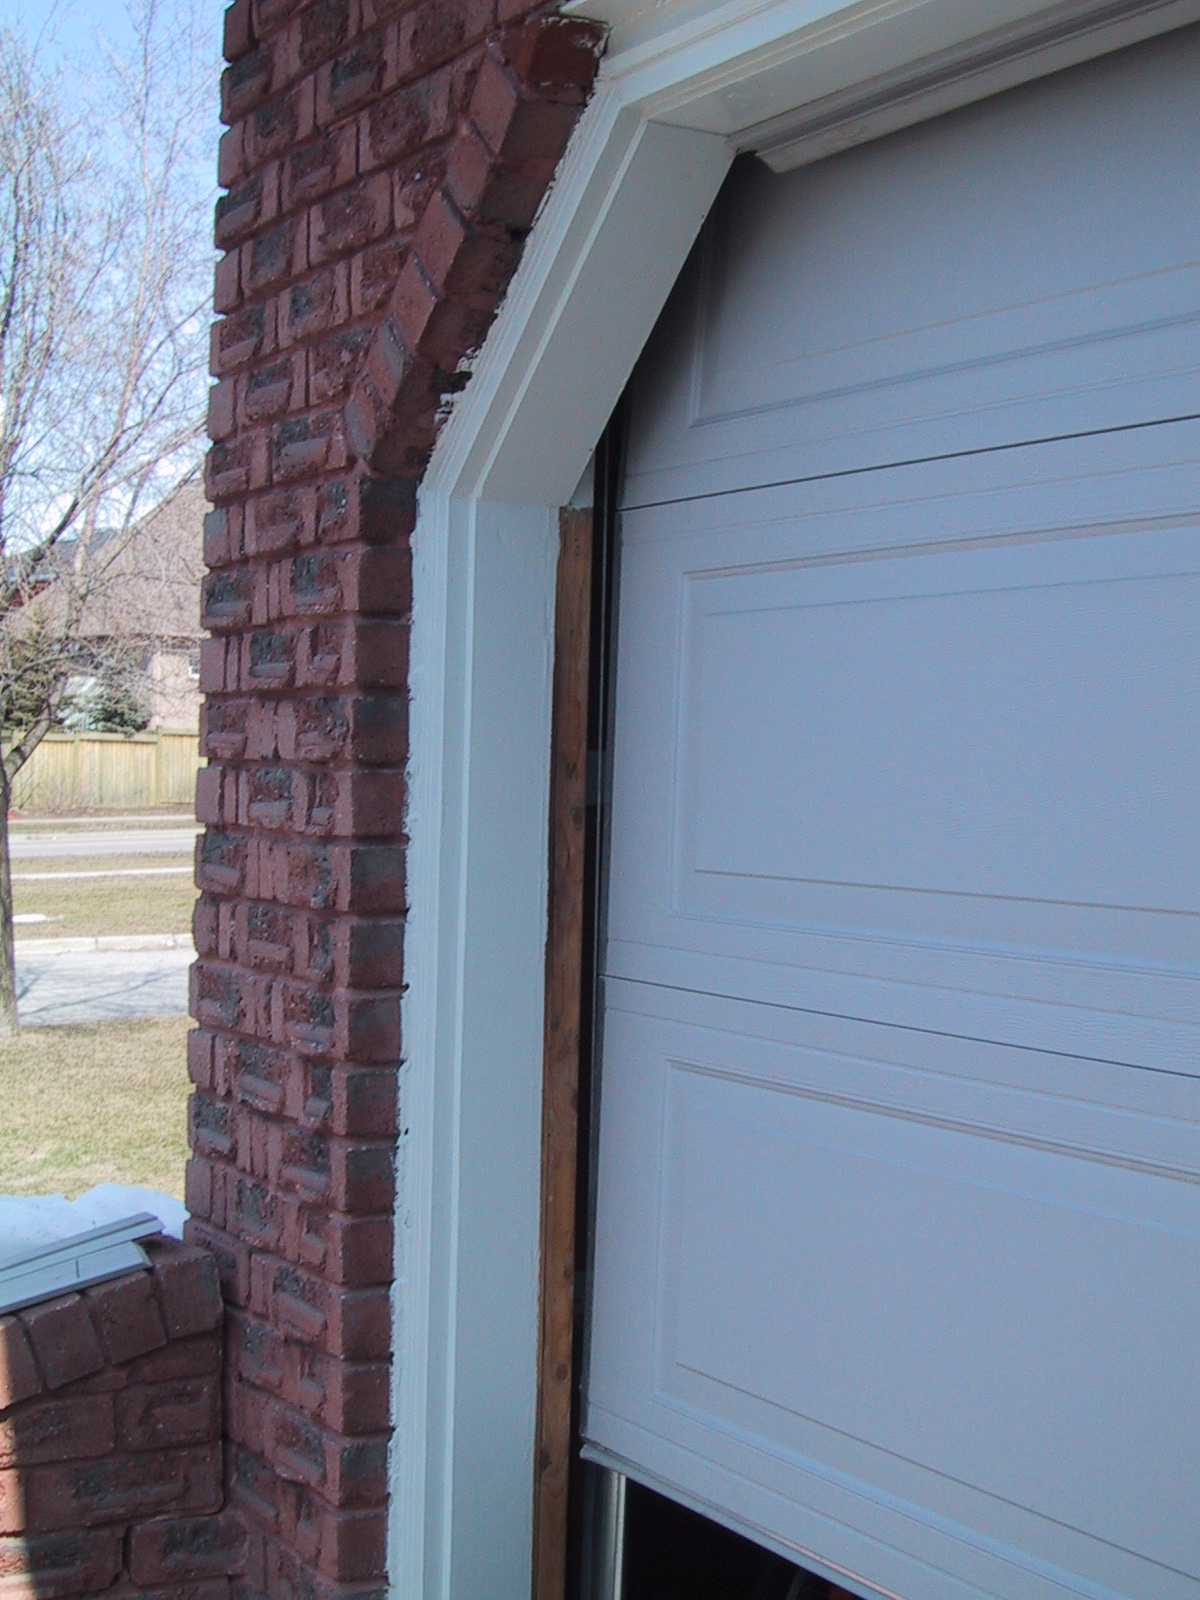 Garage Door Frame With No Weather Stripping (View 3 of 10)